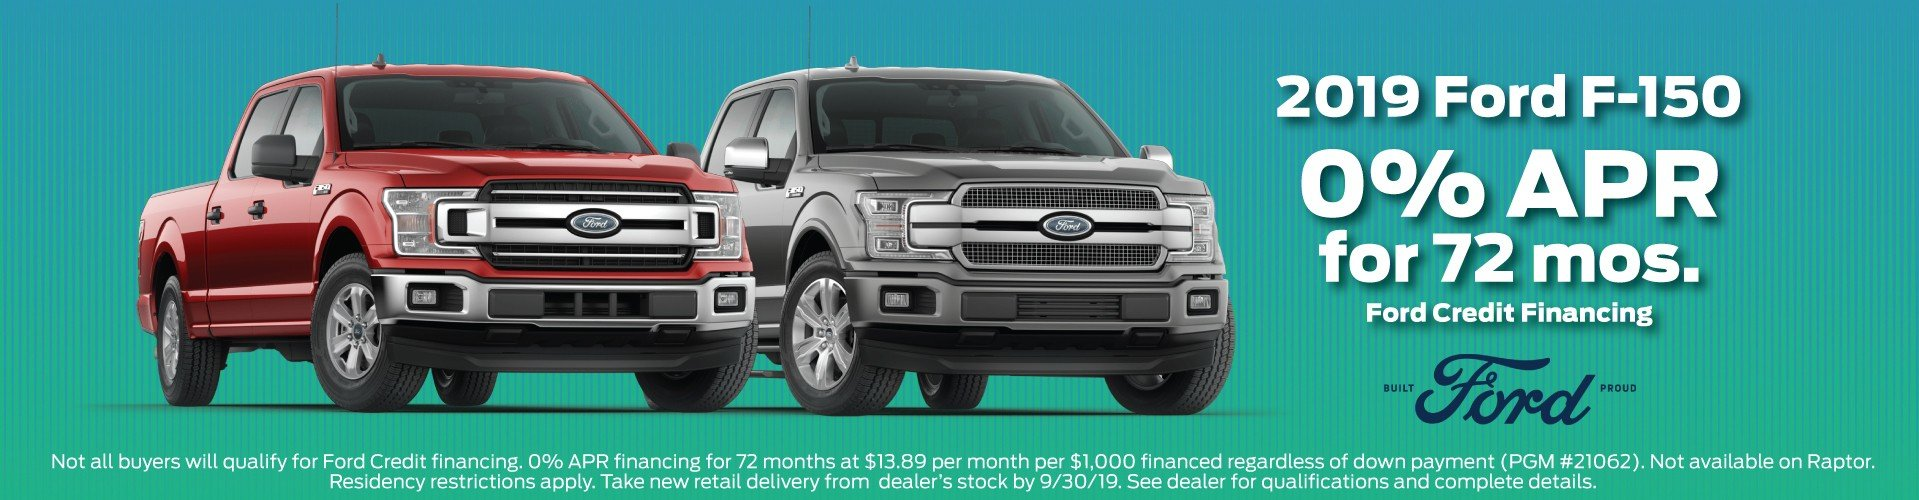 2019 Ford F150 Offer 7-2019